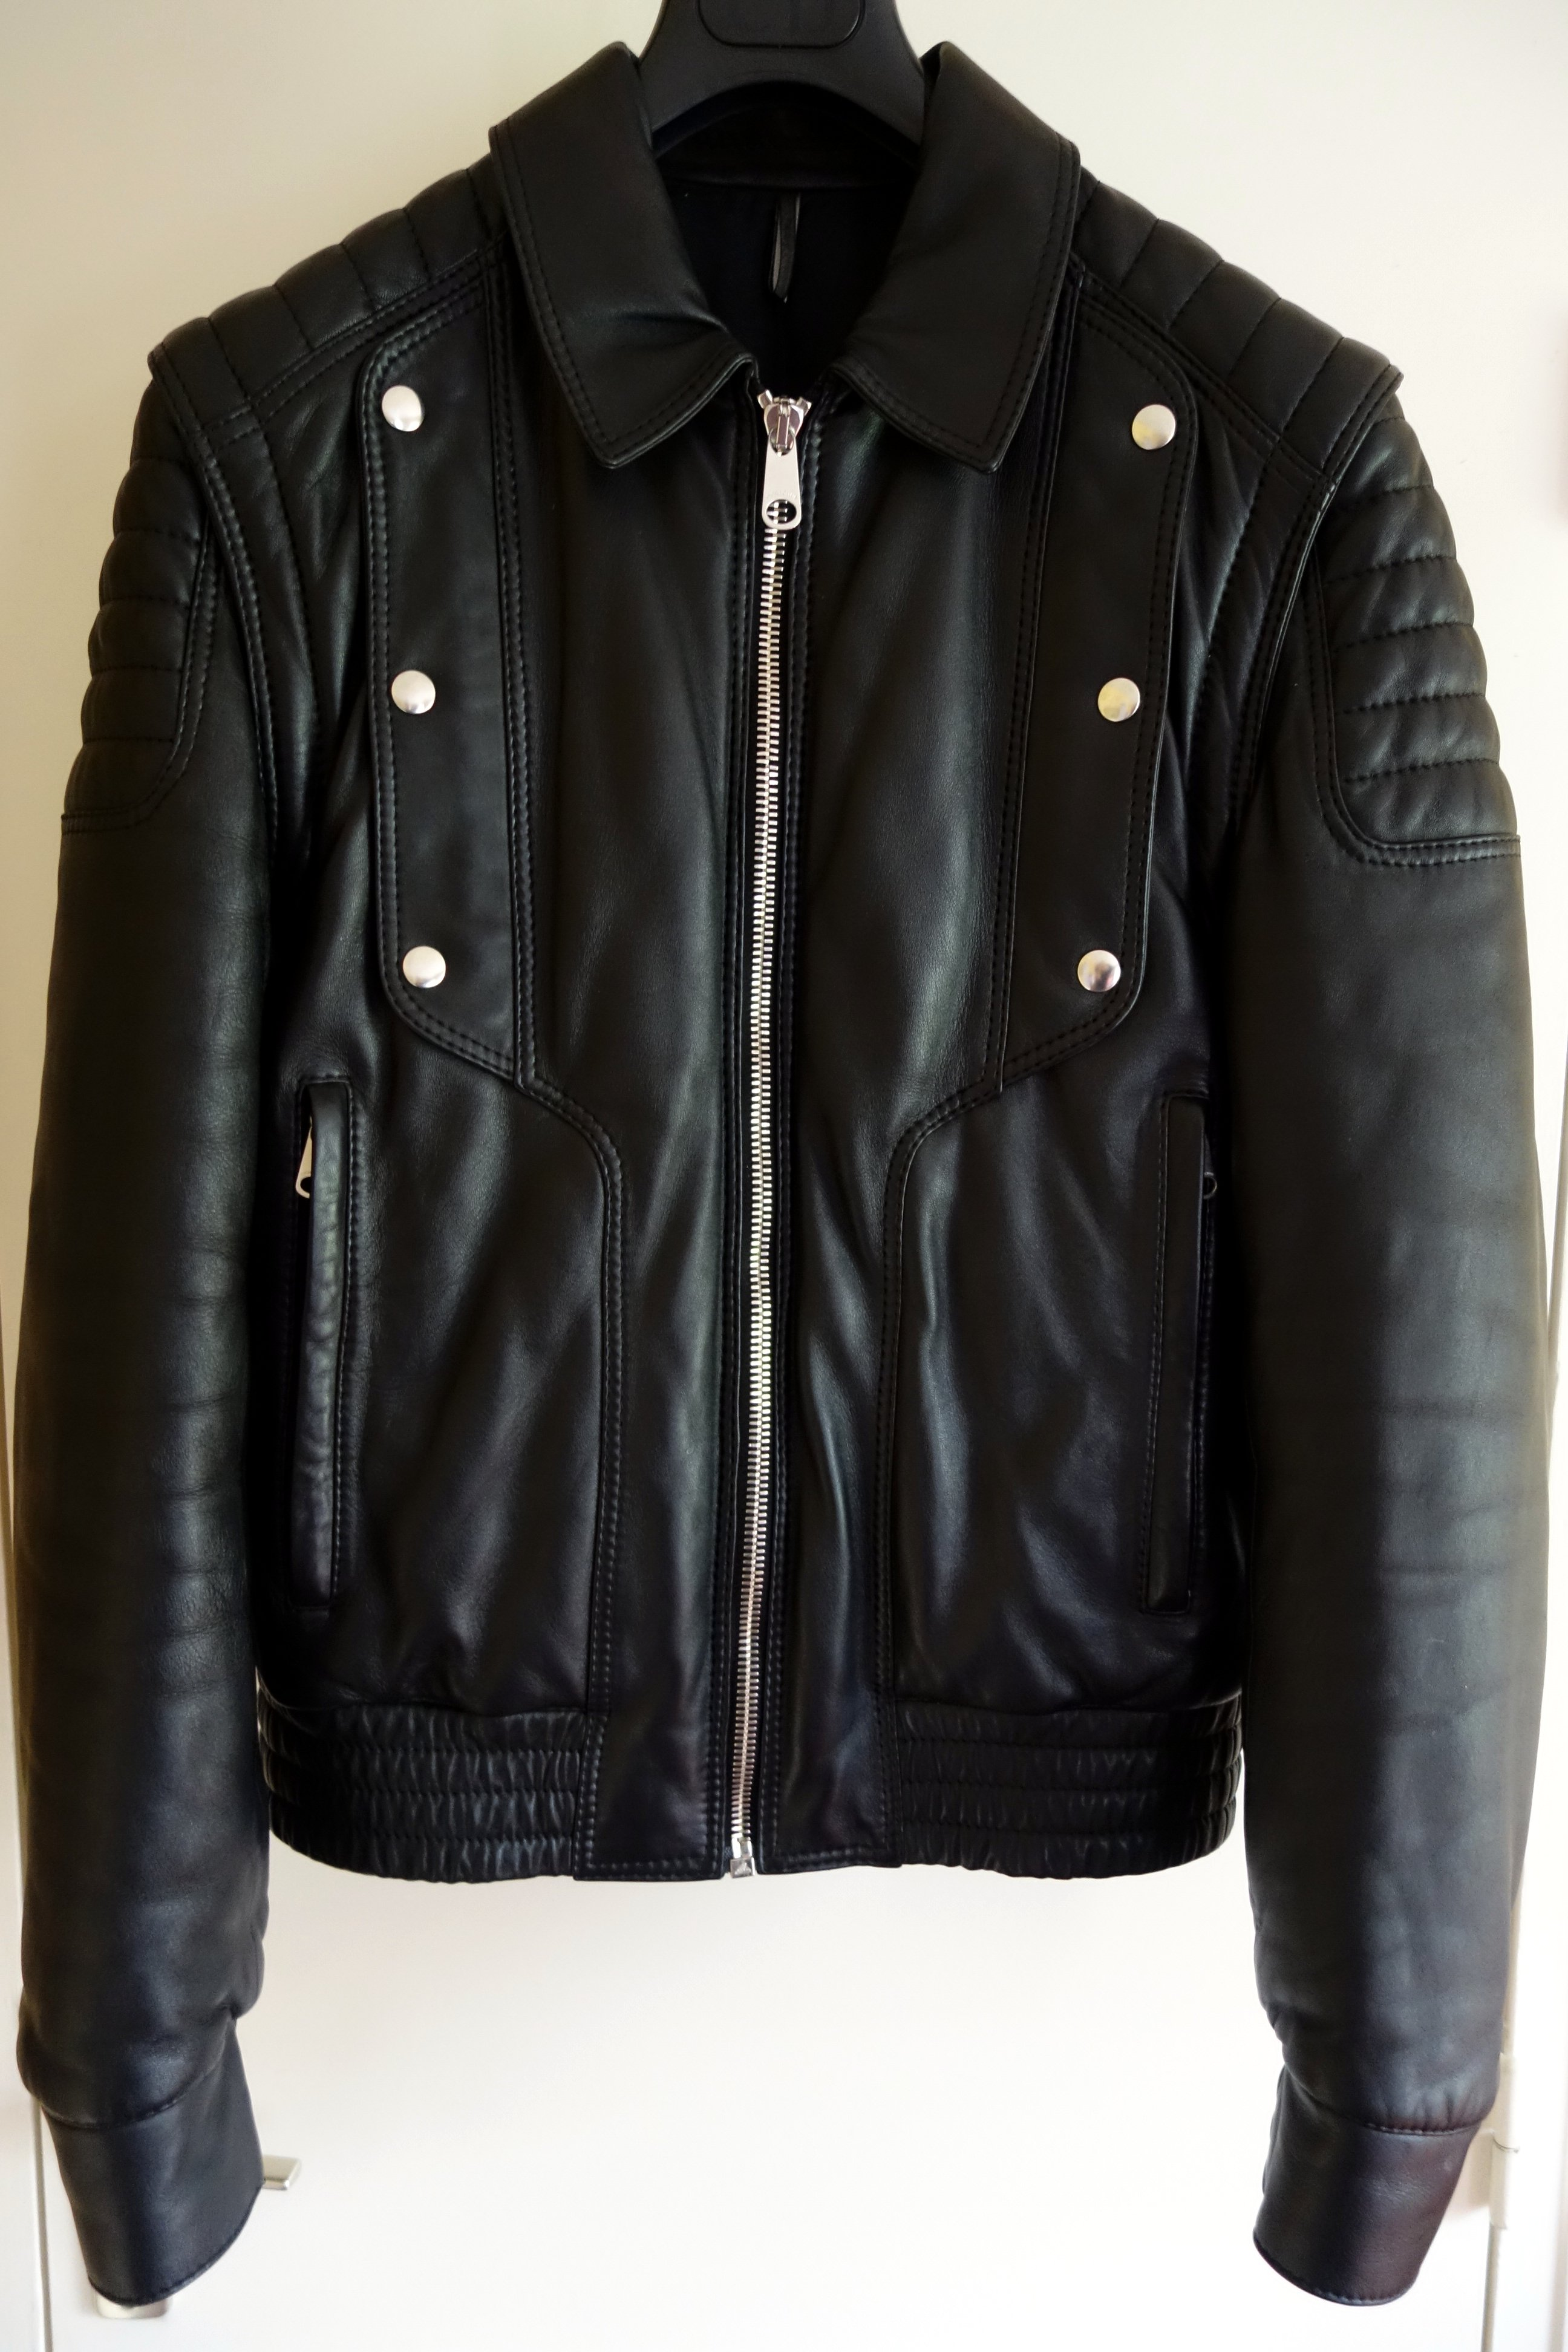 Leather Cuir Dior Homme Black Padded Jacket Vest Cuir Leather Size Sz 50 M Medium L Large Justice Two Way Biker Napoléon Wyatt Slp L01 17 Fw08 Aw08